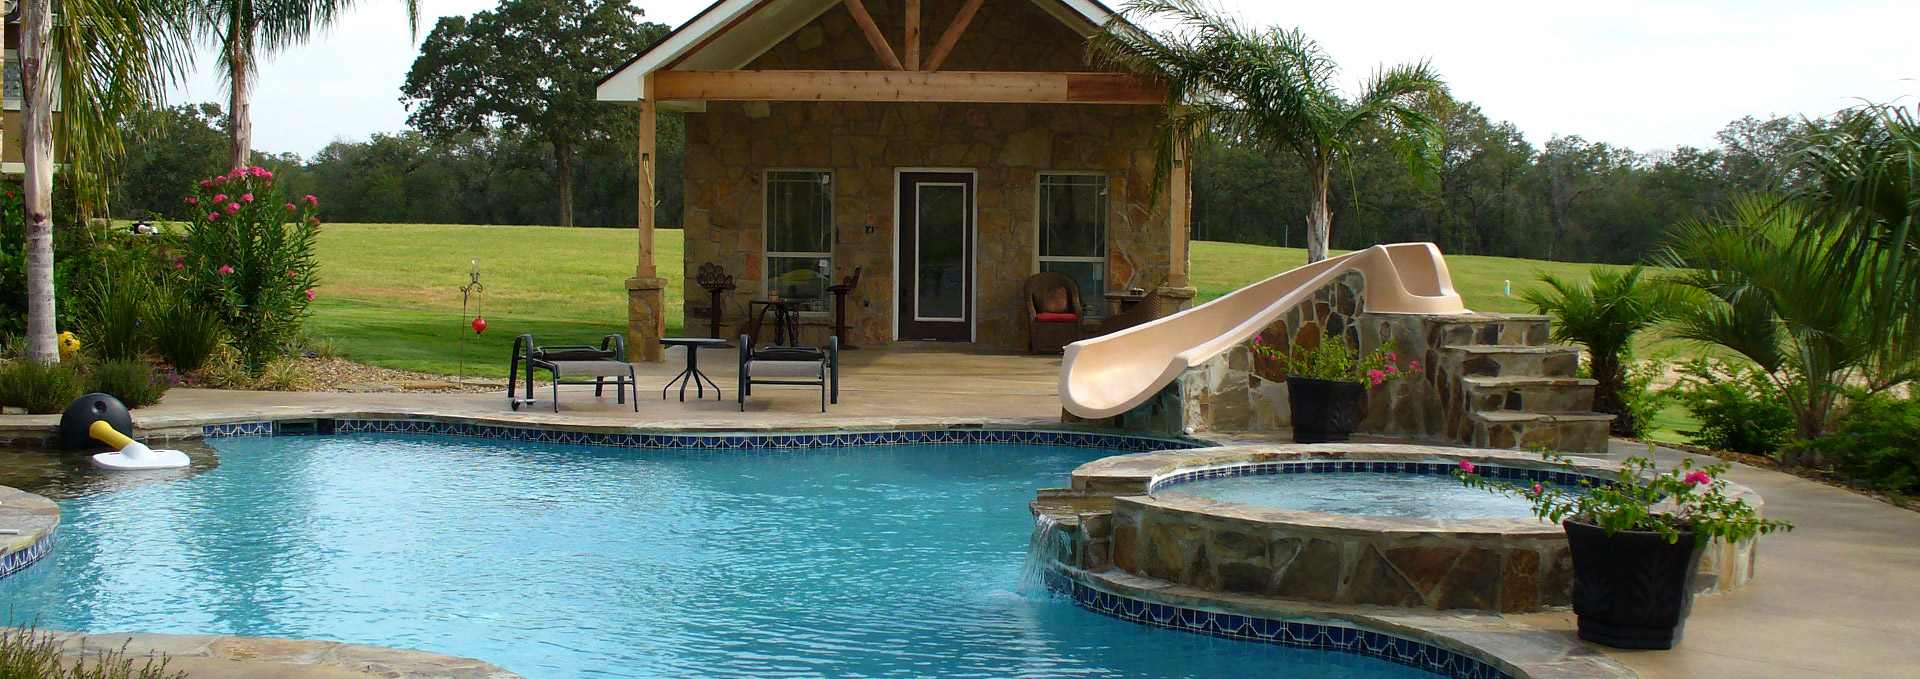 Waterfalls Pool Coping Patios Decordova Texas Tx